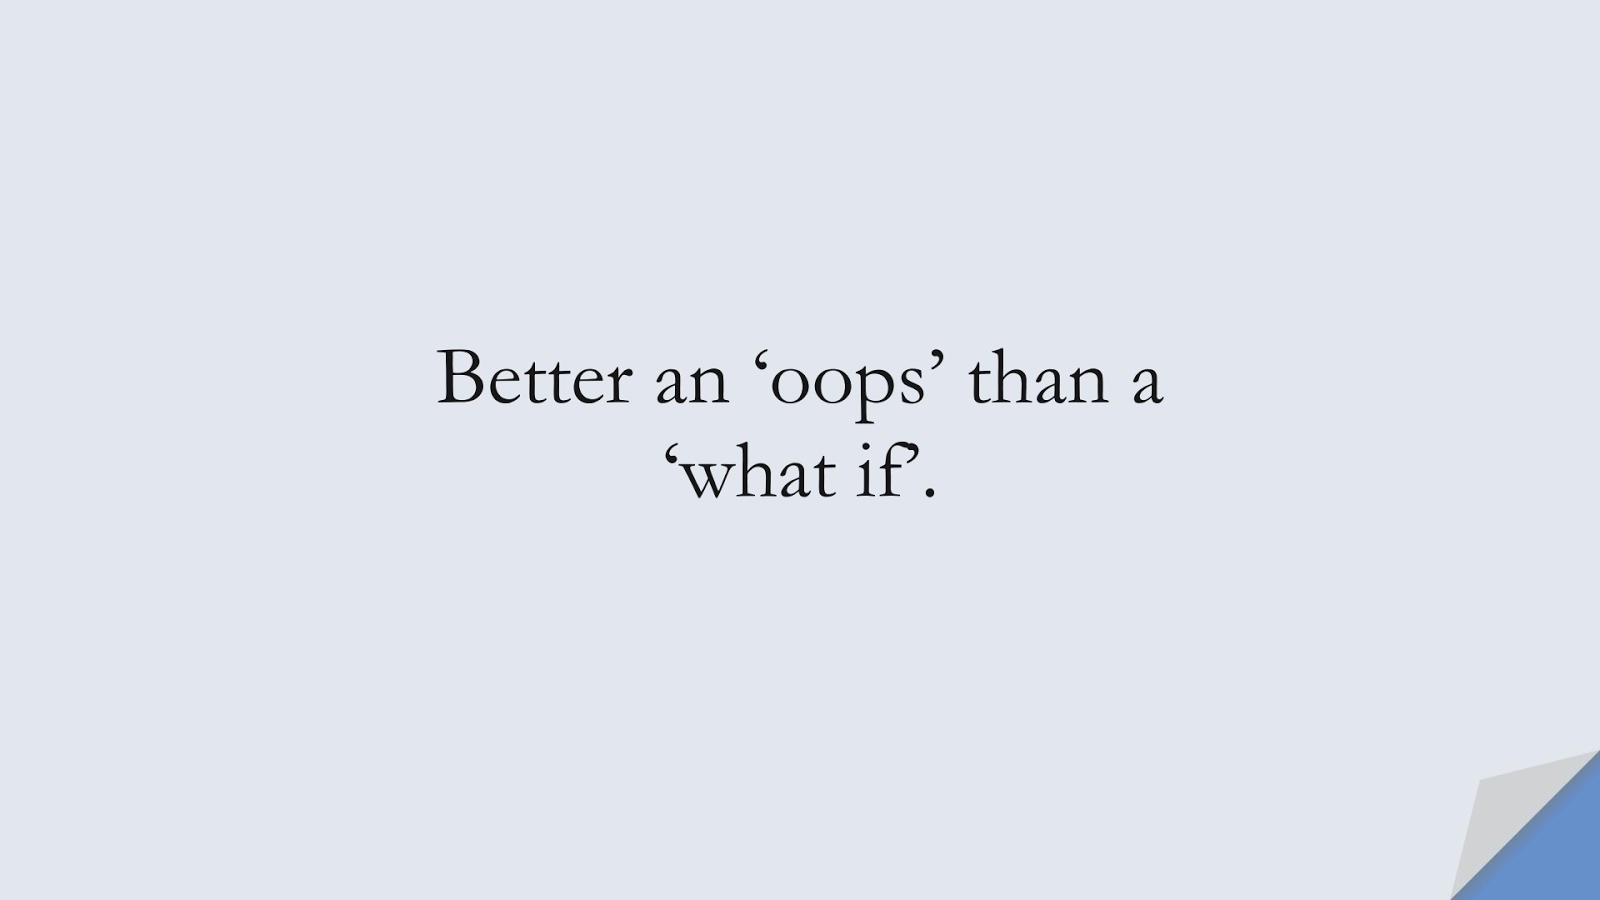 Better an 'oops' than a 'what if'.FALSE